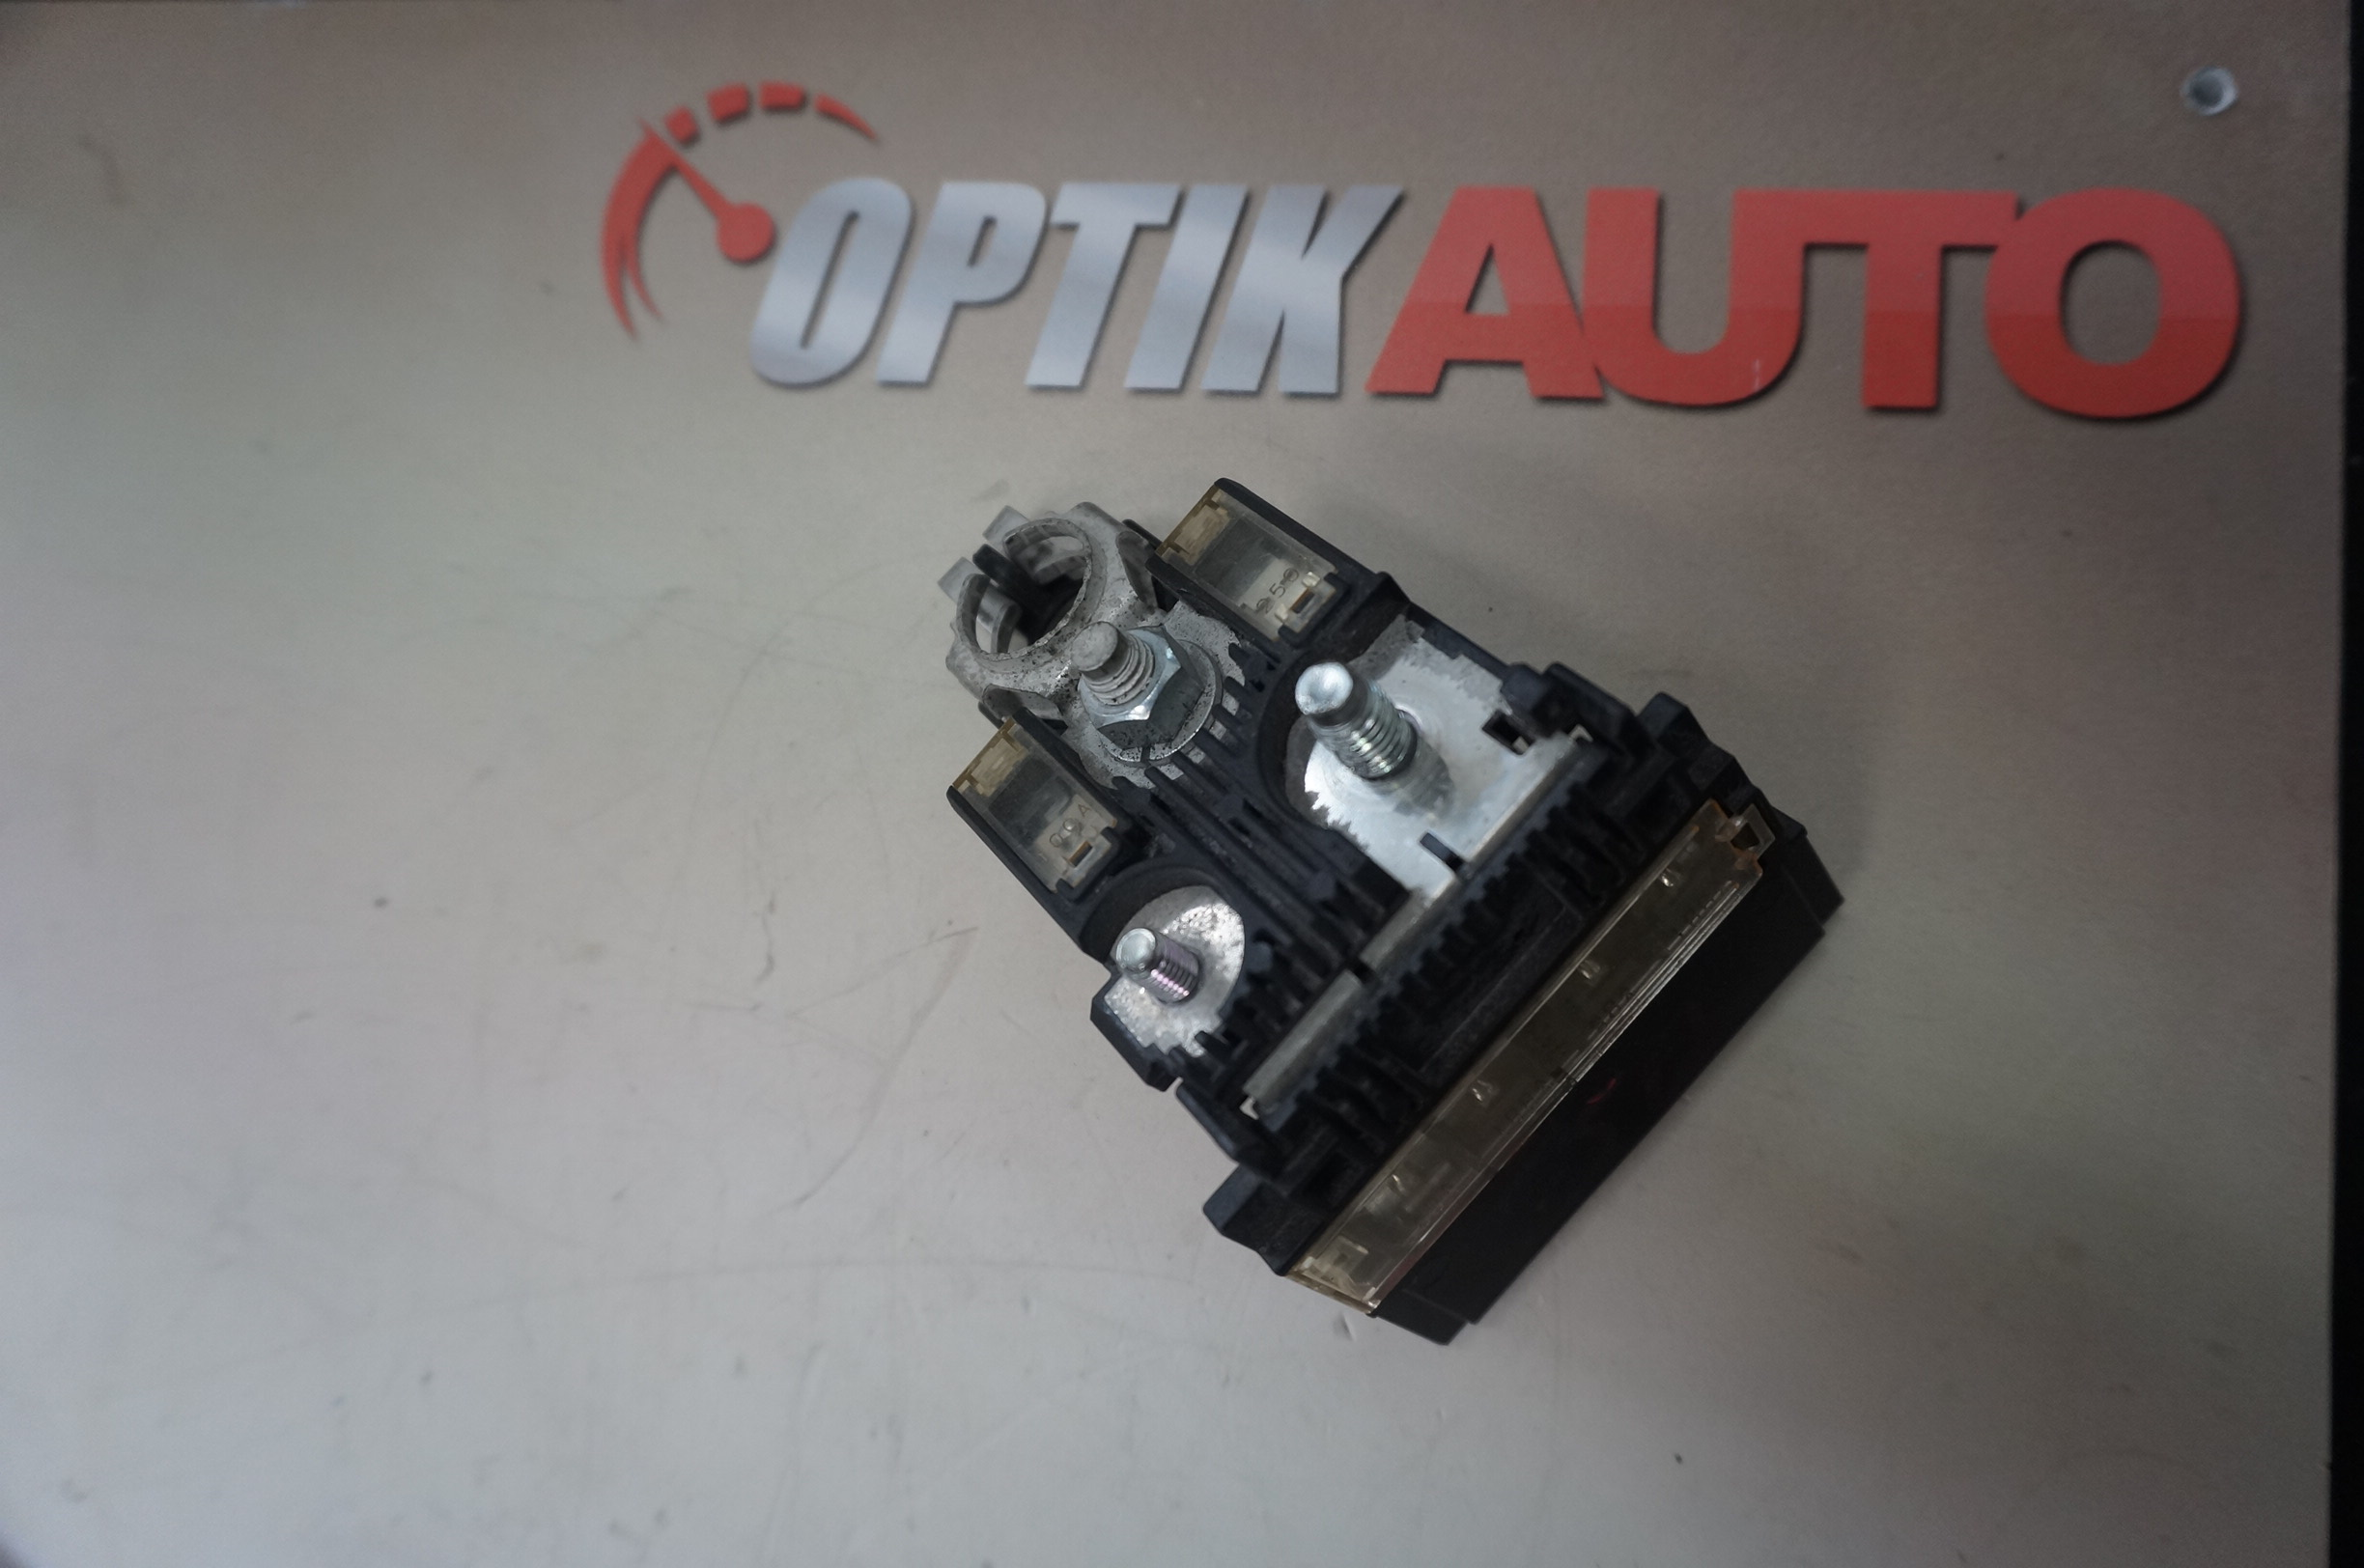 Products Archive Optikauto Infiniti M37 Fuse Box G37 Q60 Ex35 Qx50 Fx35 Qx70 Q70 Jx35 Qx60 2008 2017 Holder Positive Link 24080jk60a